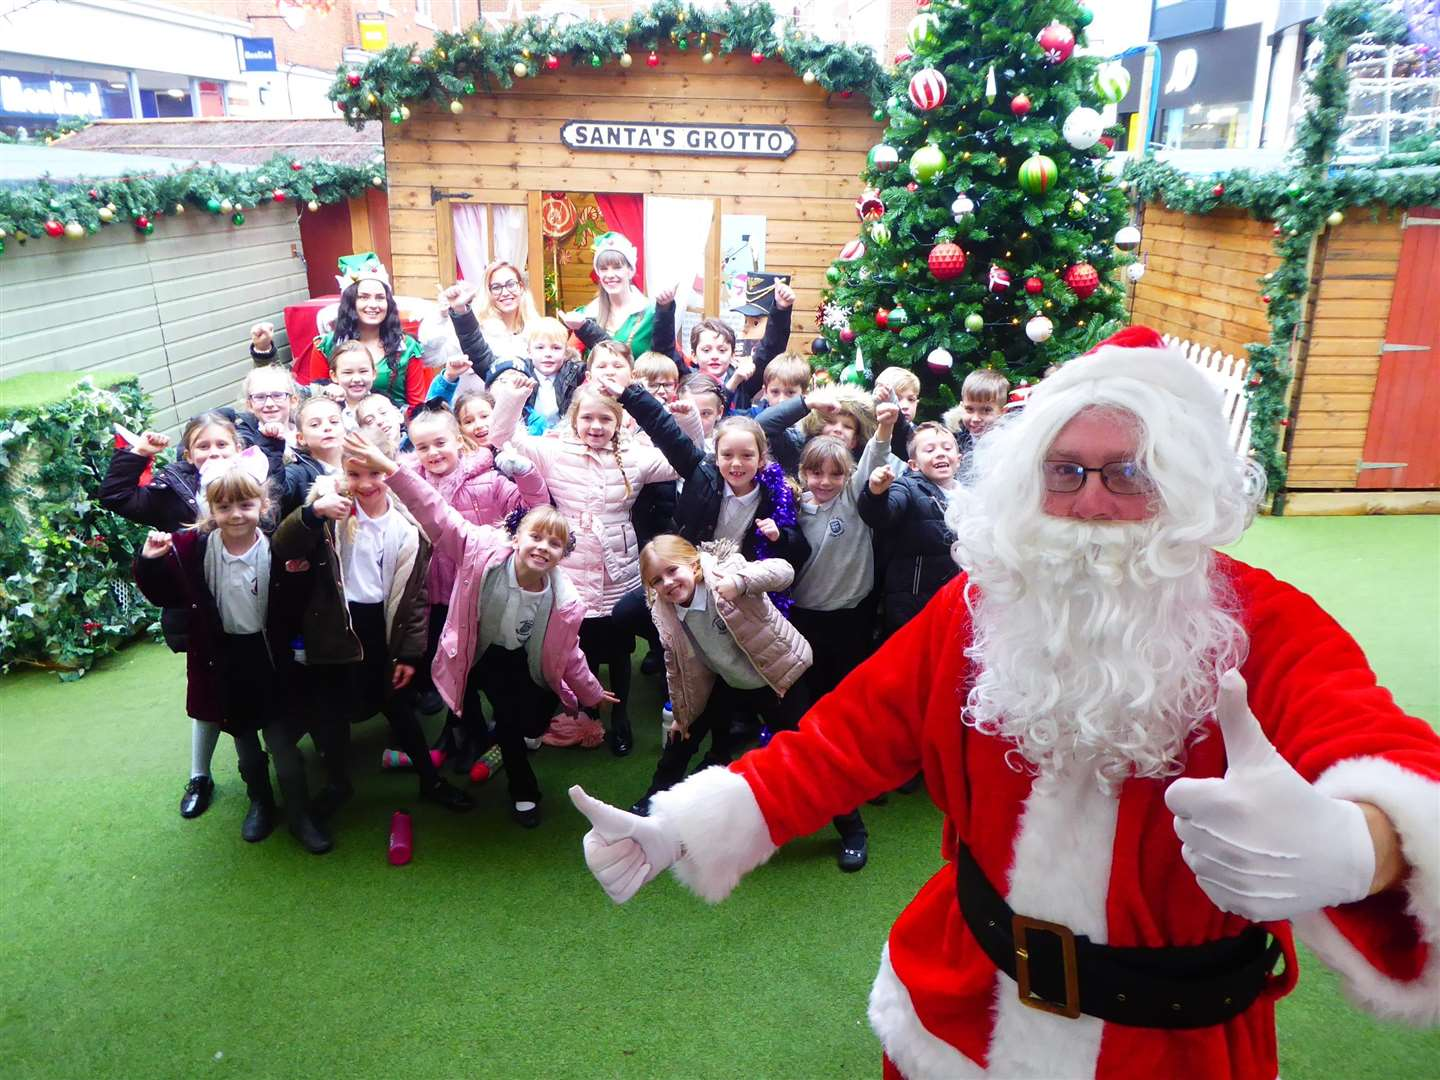 Santa meets Truro Class from Herne CofE Juniors at Whitefriars' Christmas Market.